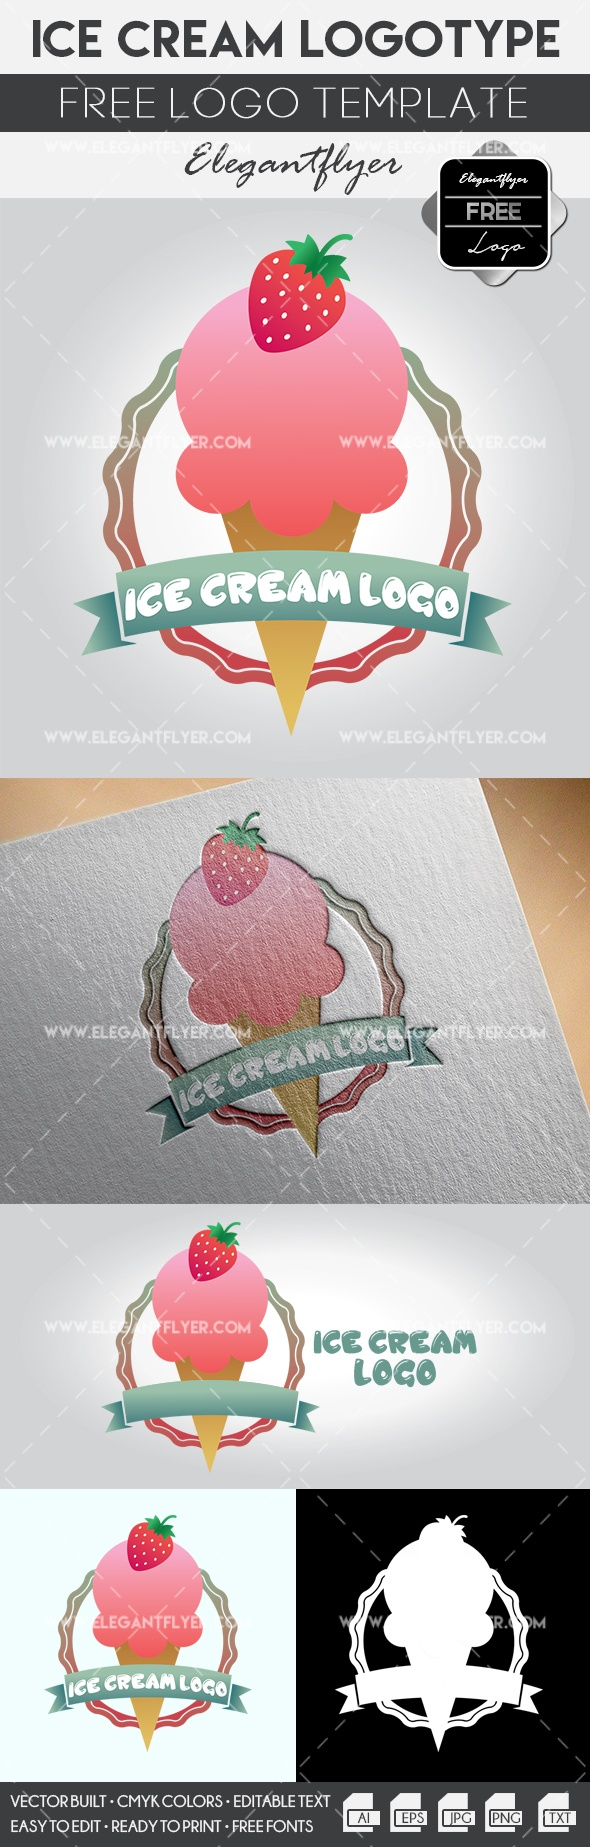 Ice Cream – Free Logo Templates